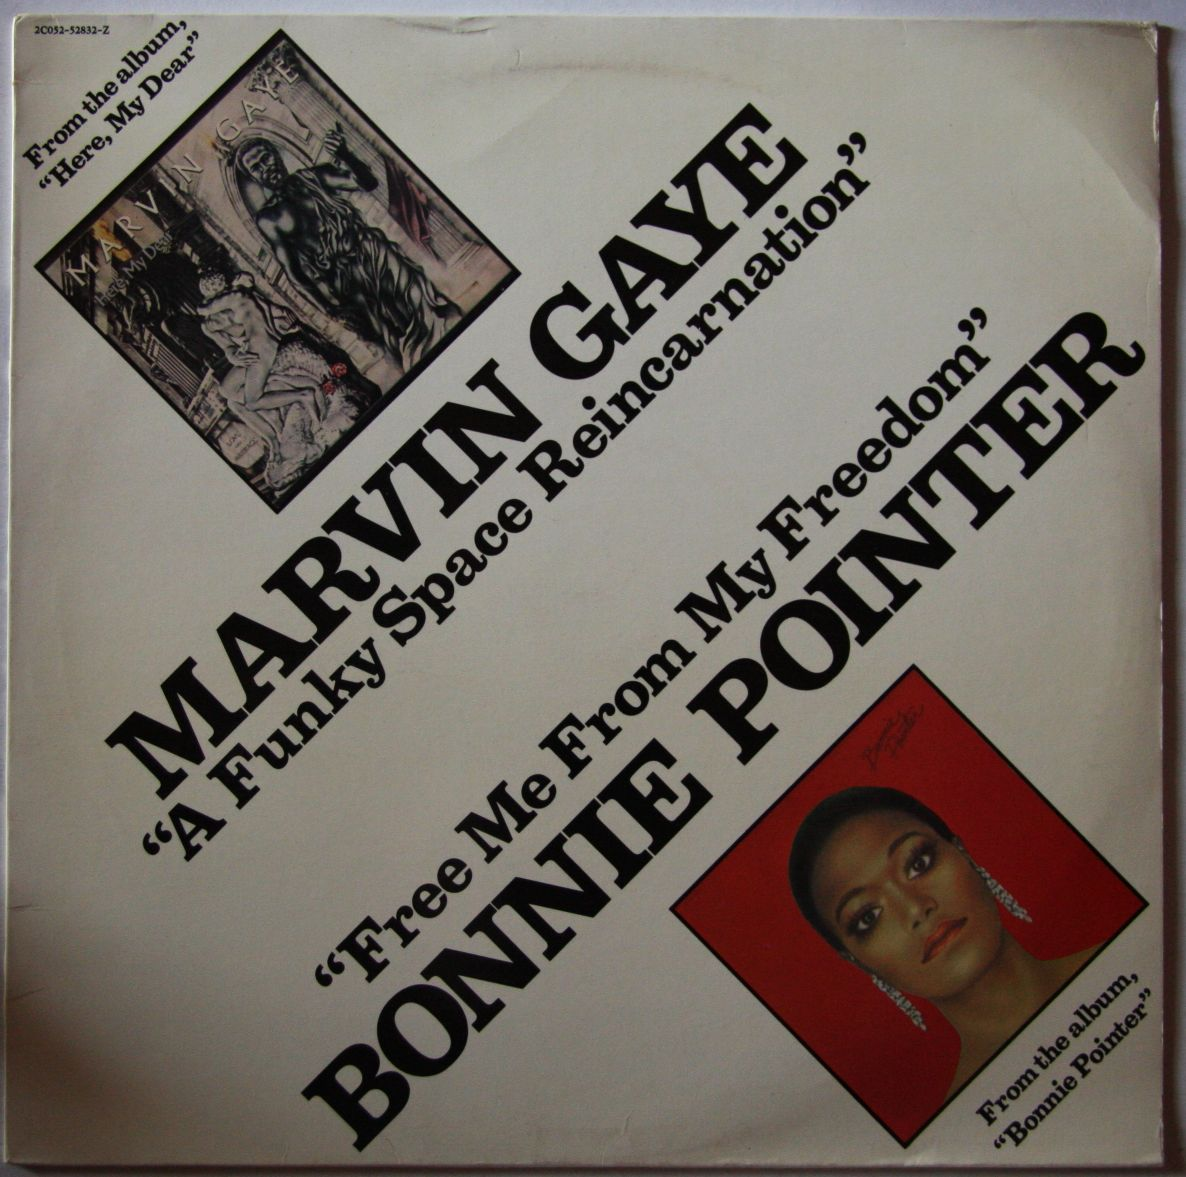 Marvin Gaye -  vinyl records and